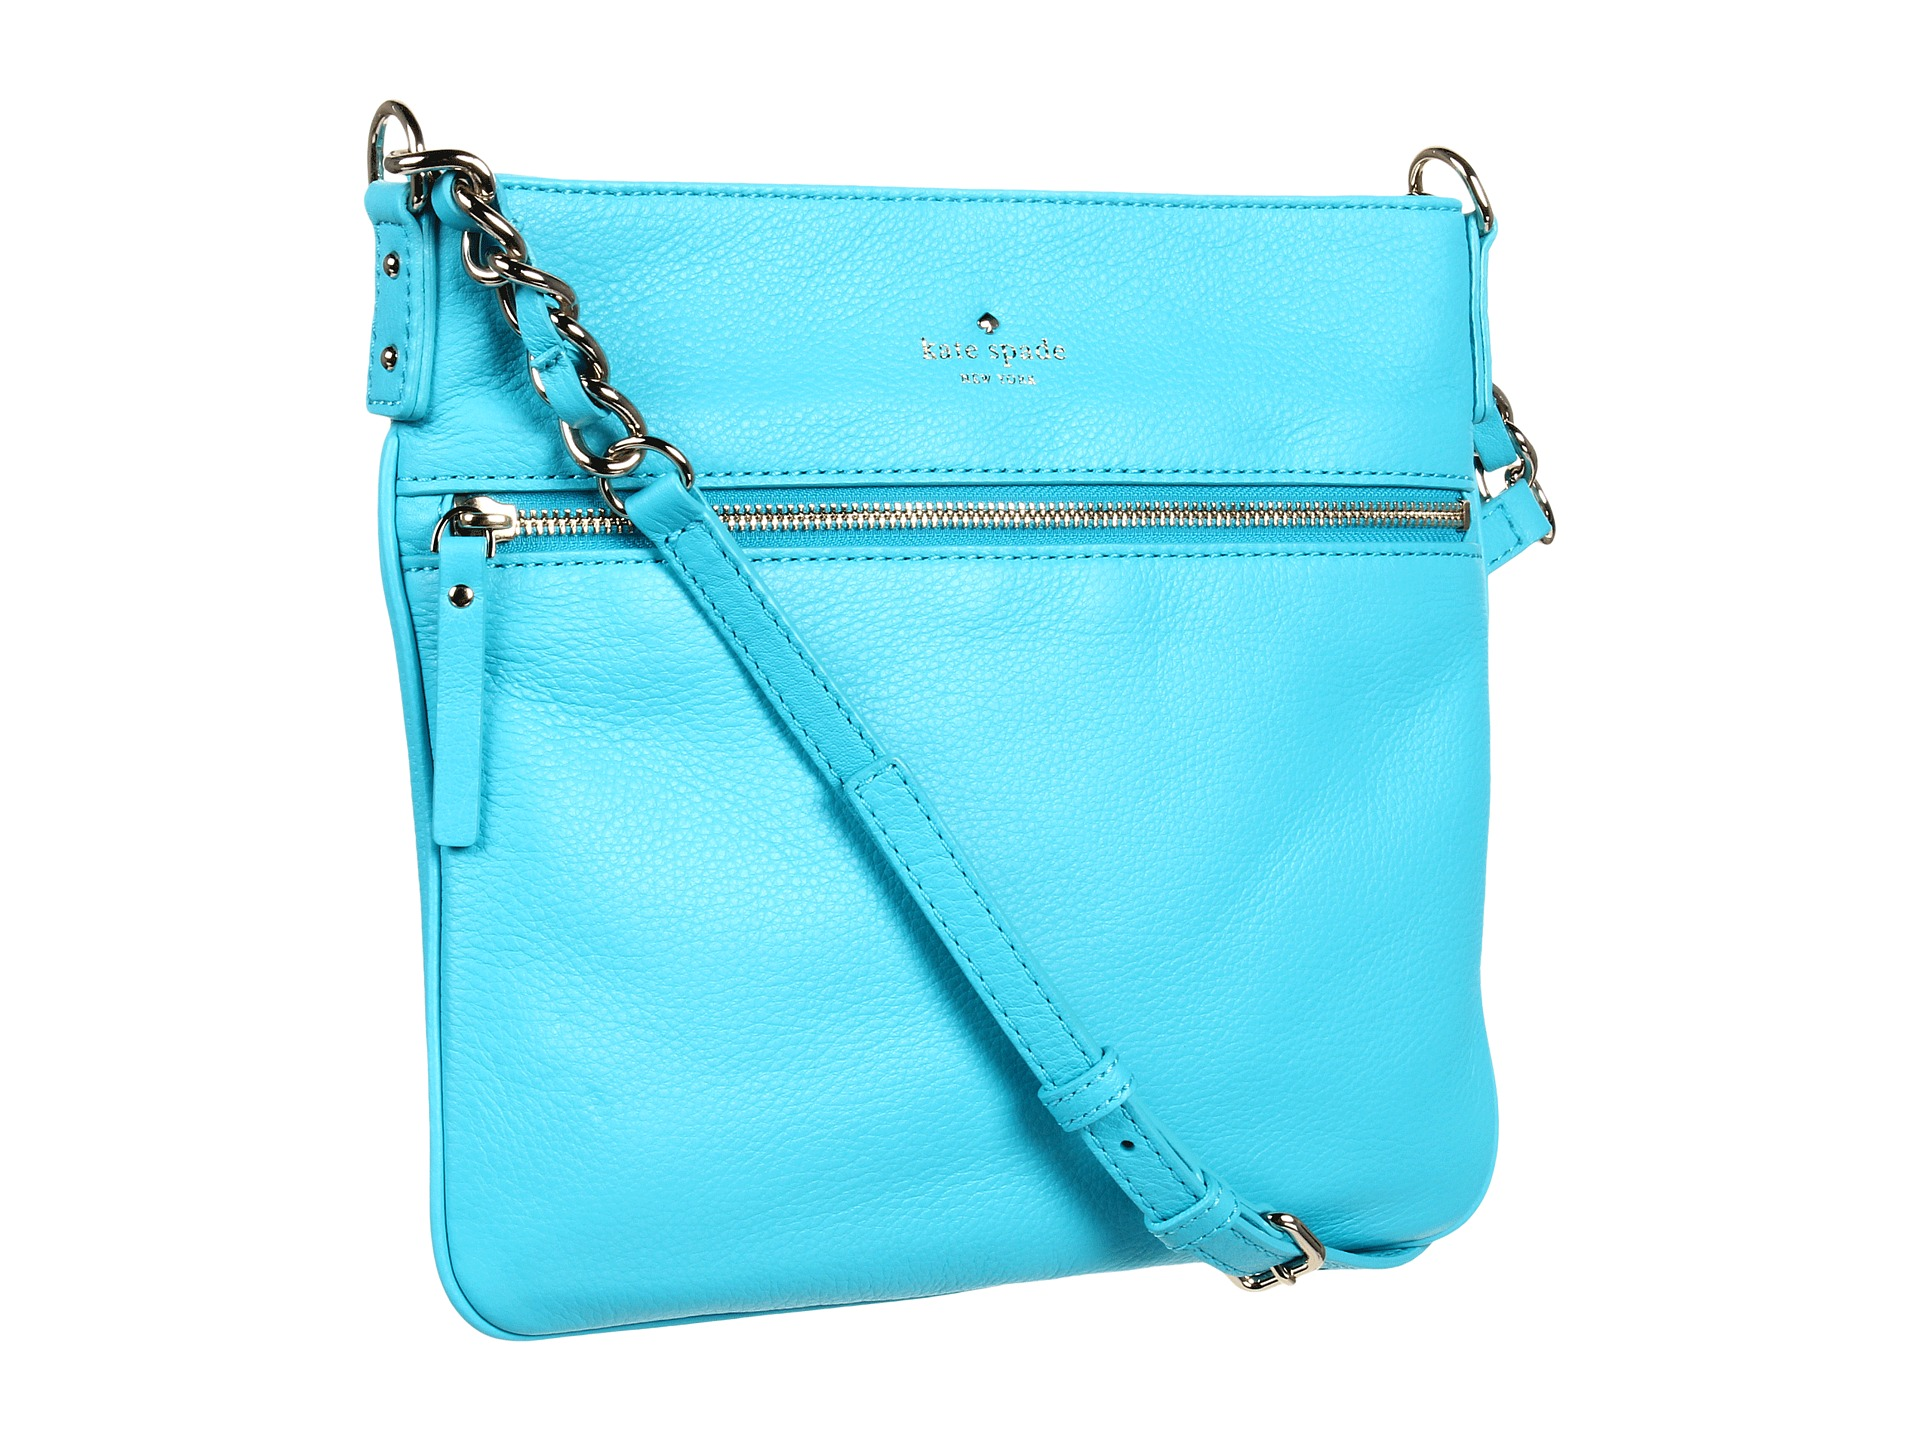 Kate Spade New York Cobble Hill Ellen $165.99 $238.00